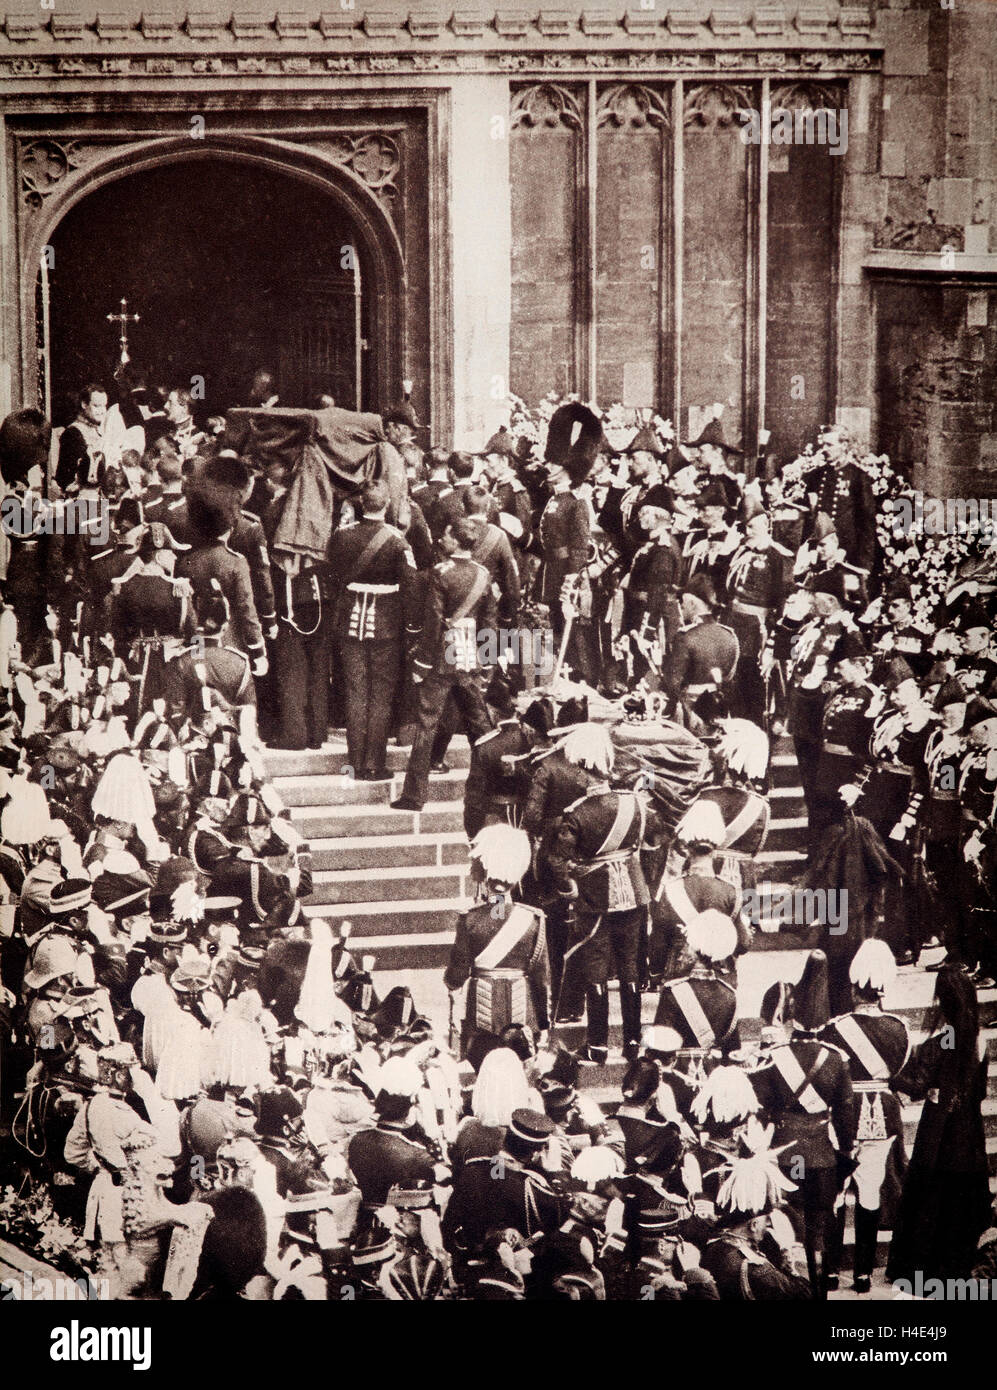 The coffin of King Edward VII is carried into St George's Chapel in Windsor Castle on 20th May 1910. - Stock Image